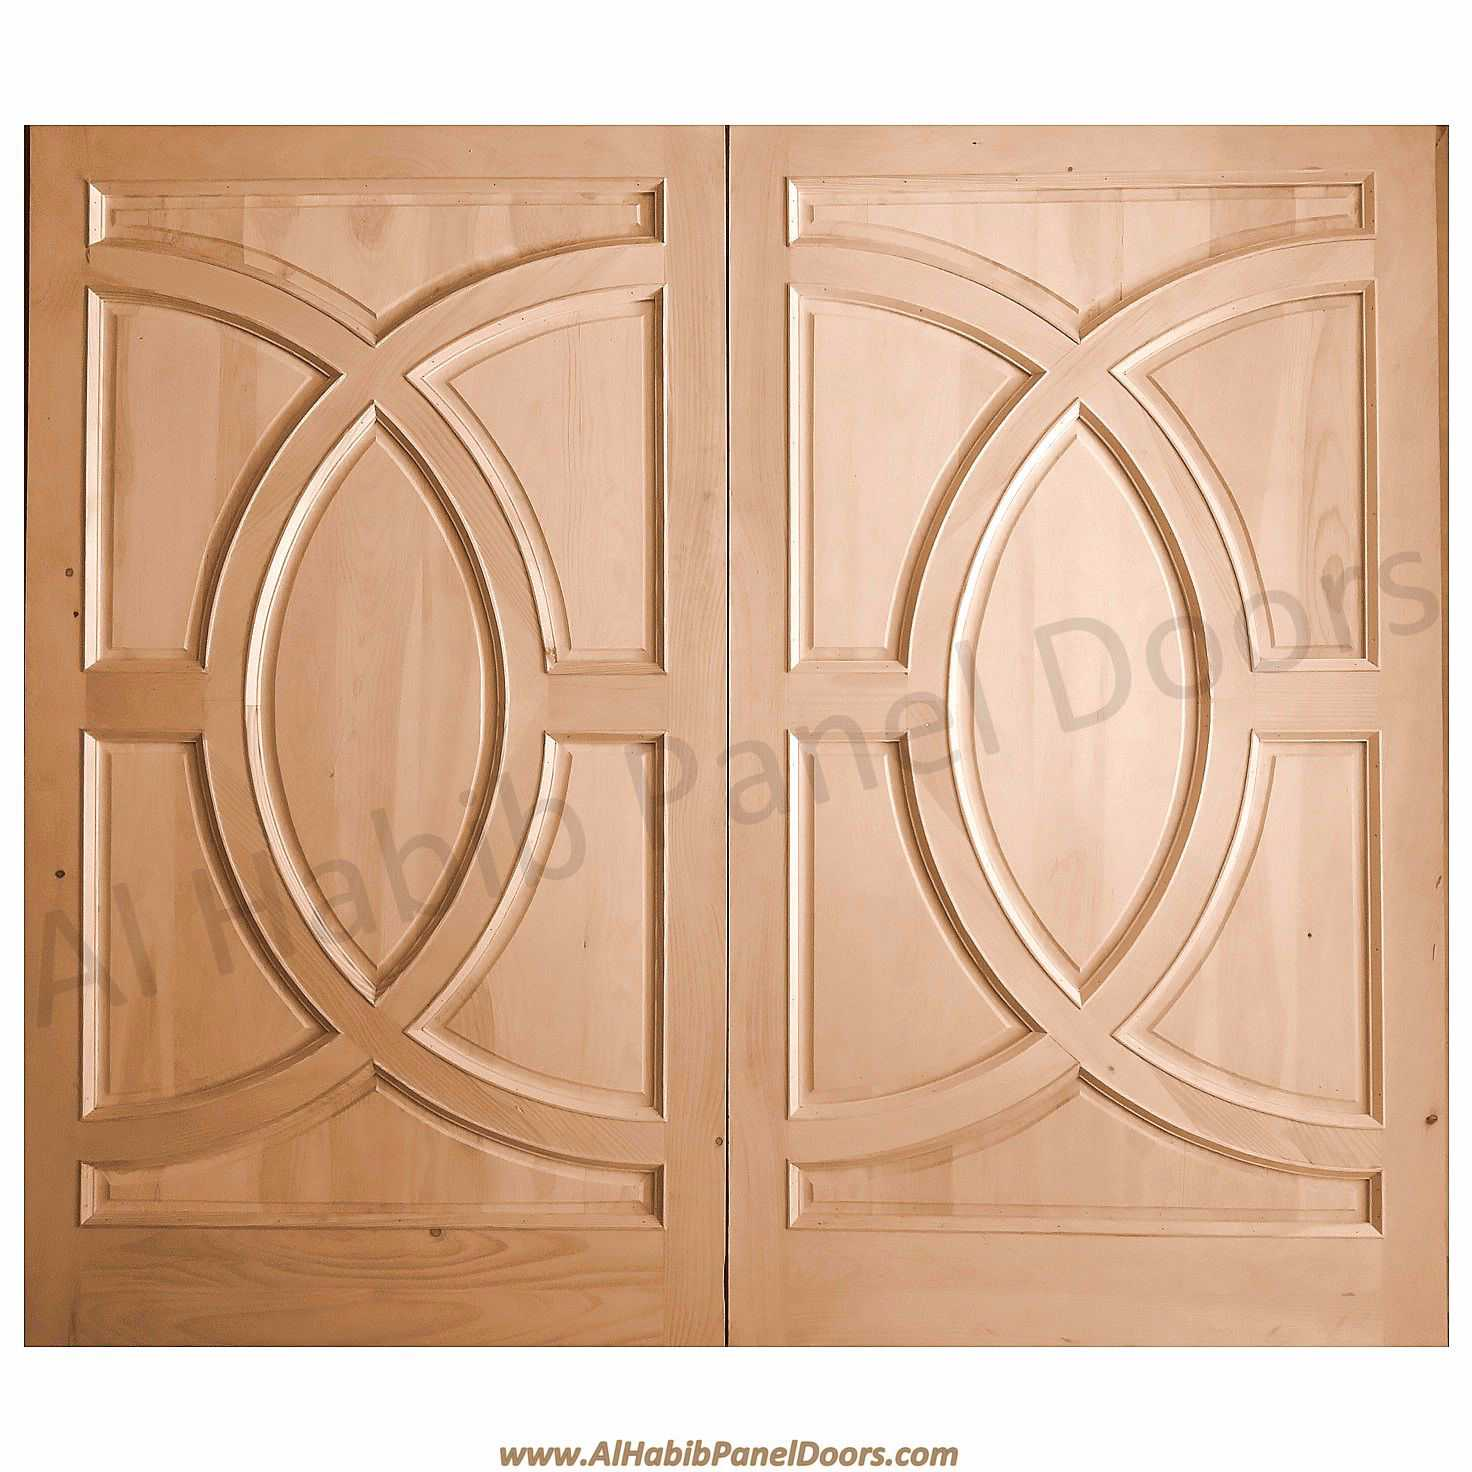 Pakistani kail solid wood double door hpd410 main doors for Wooden double door designs for main door